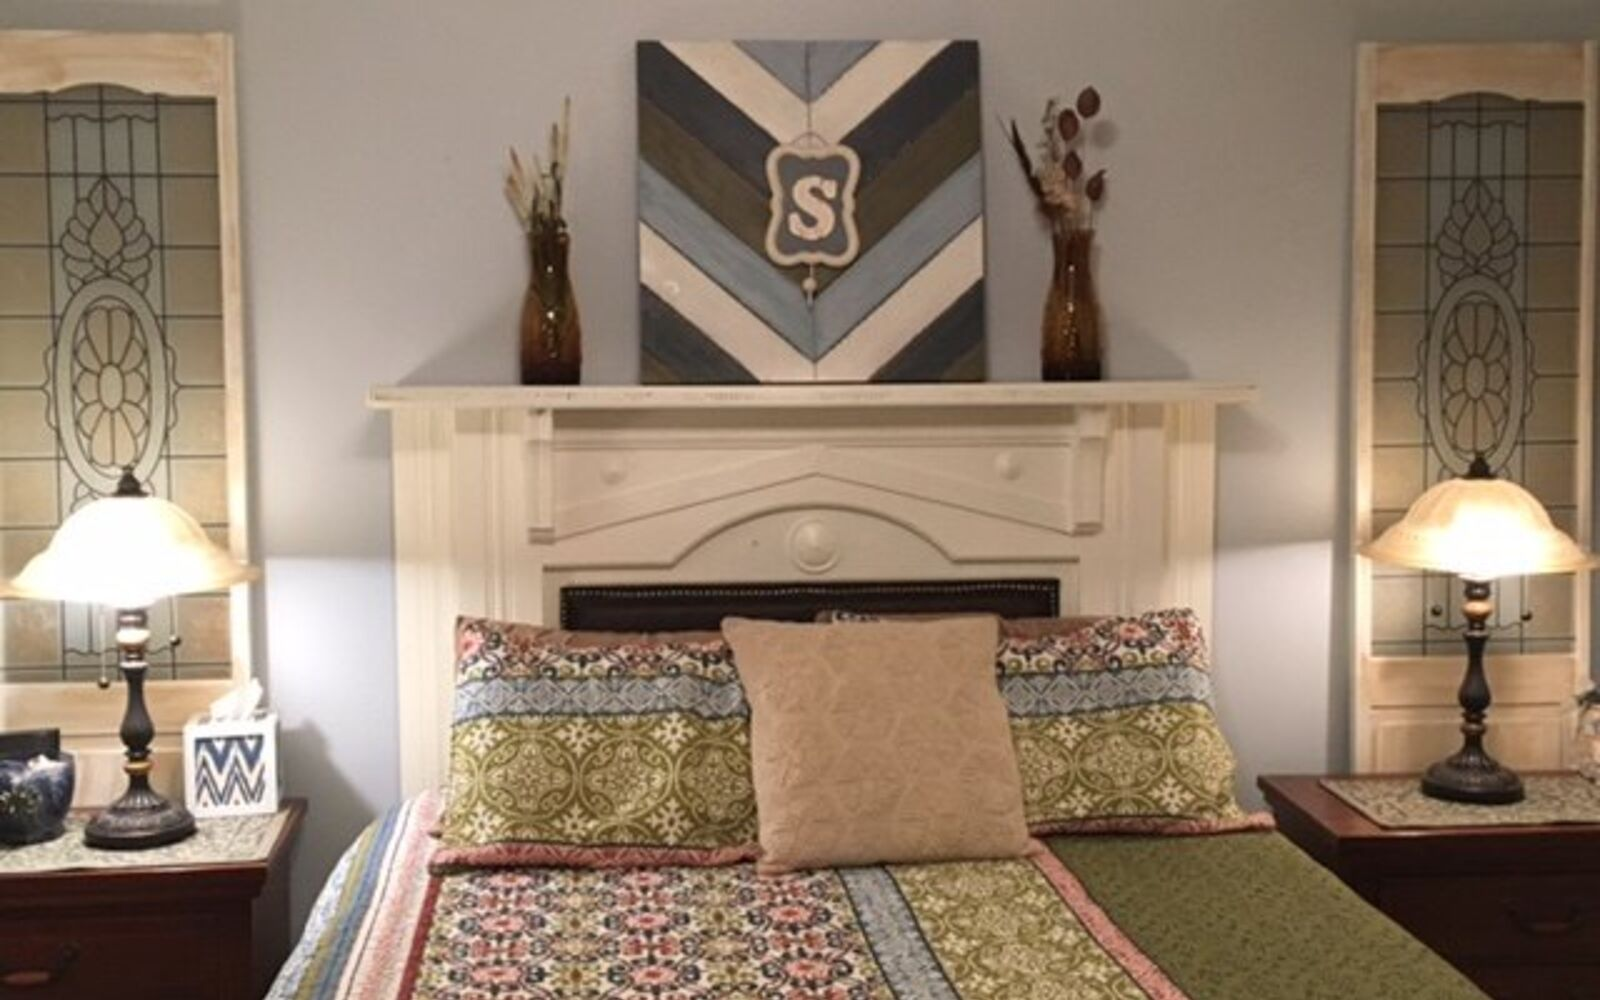 s 15 makeovers that will make you rethink your bedroom, Update Your Room By Updating Your Mantel